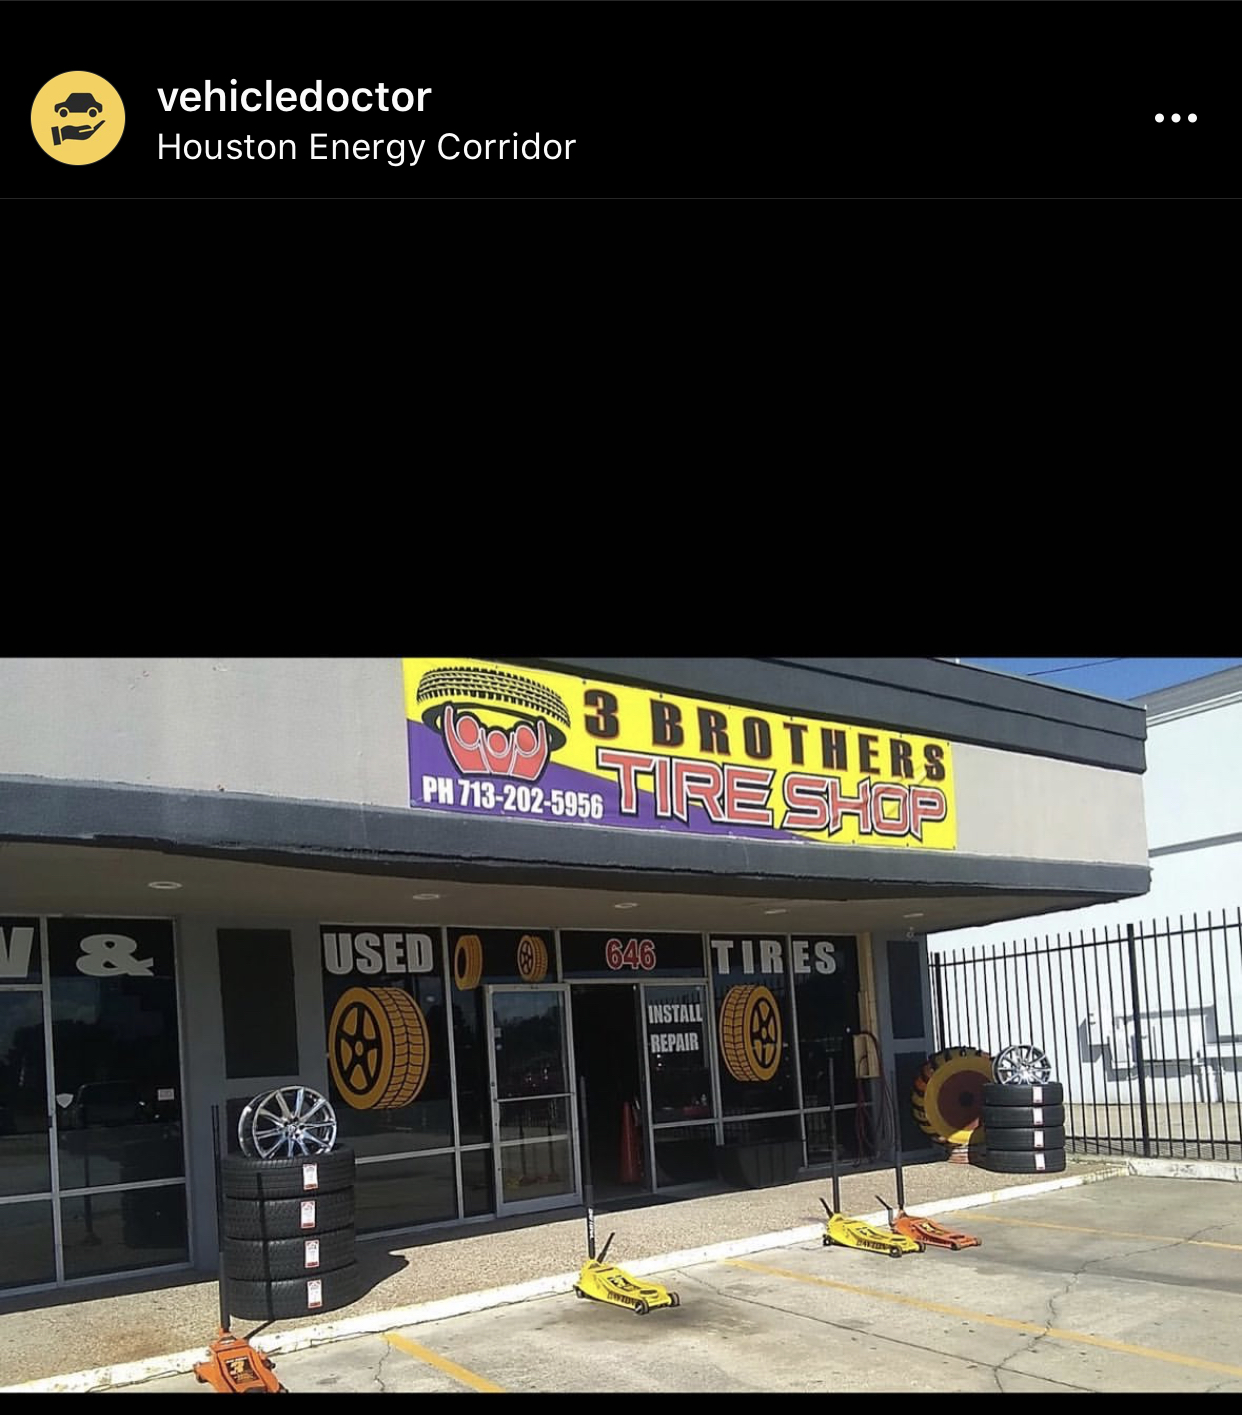 3 Brothers Tire Shop